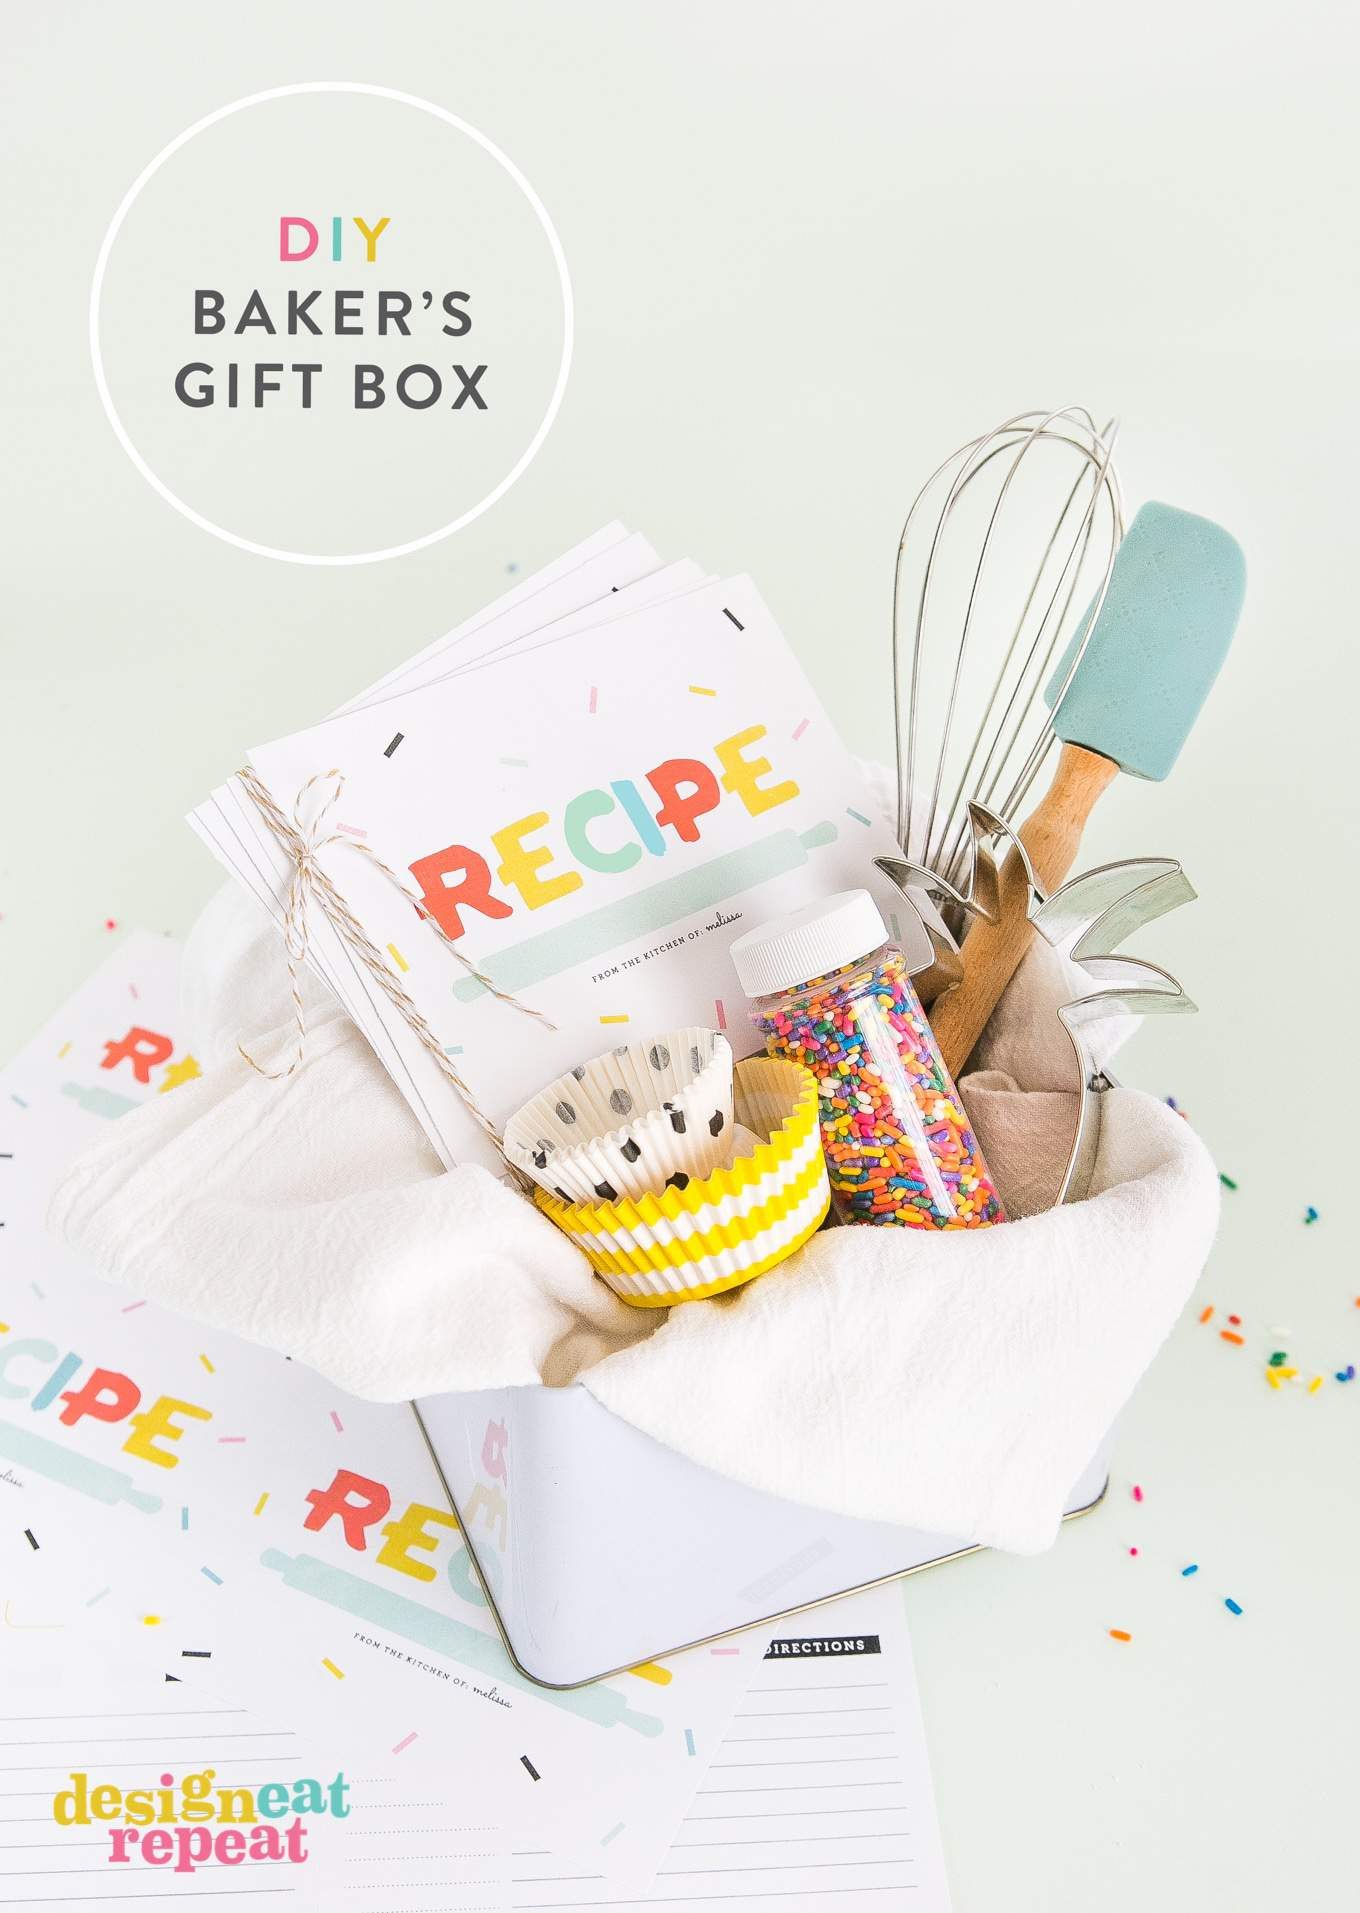 Download these free printable recipe cards & bring back the pre-internet nostalgia of hand writing & exchanging recipes with friends & family!